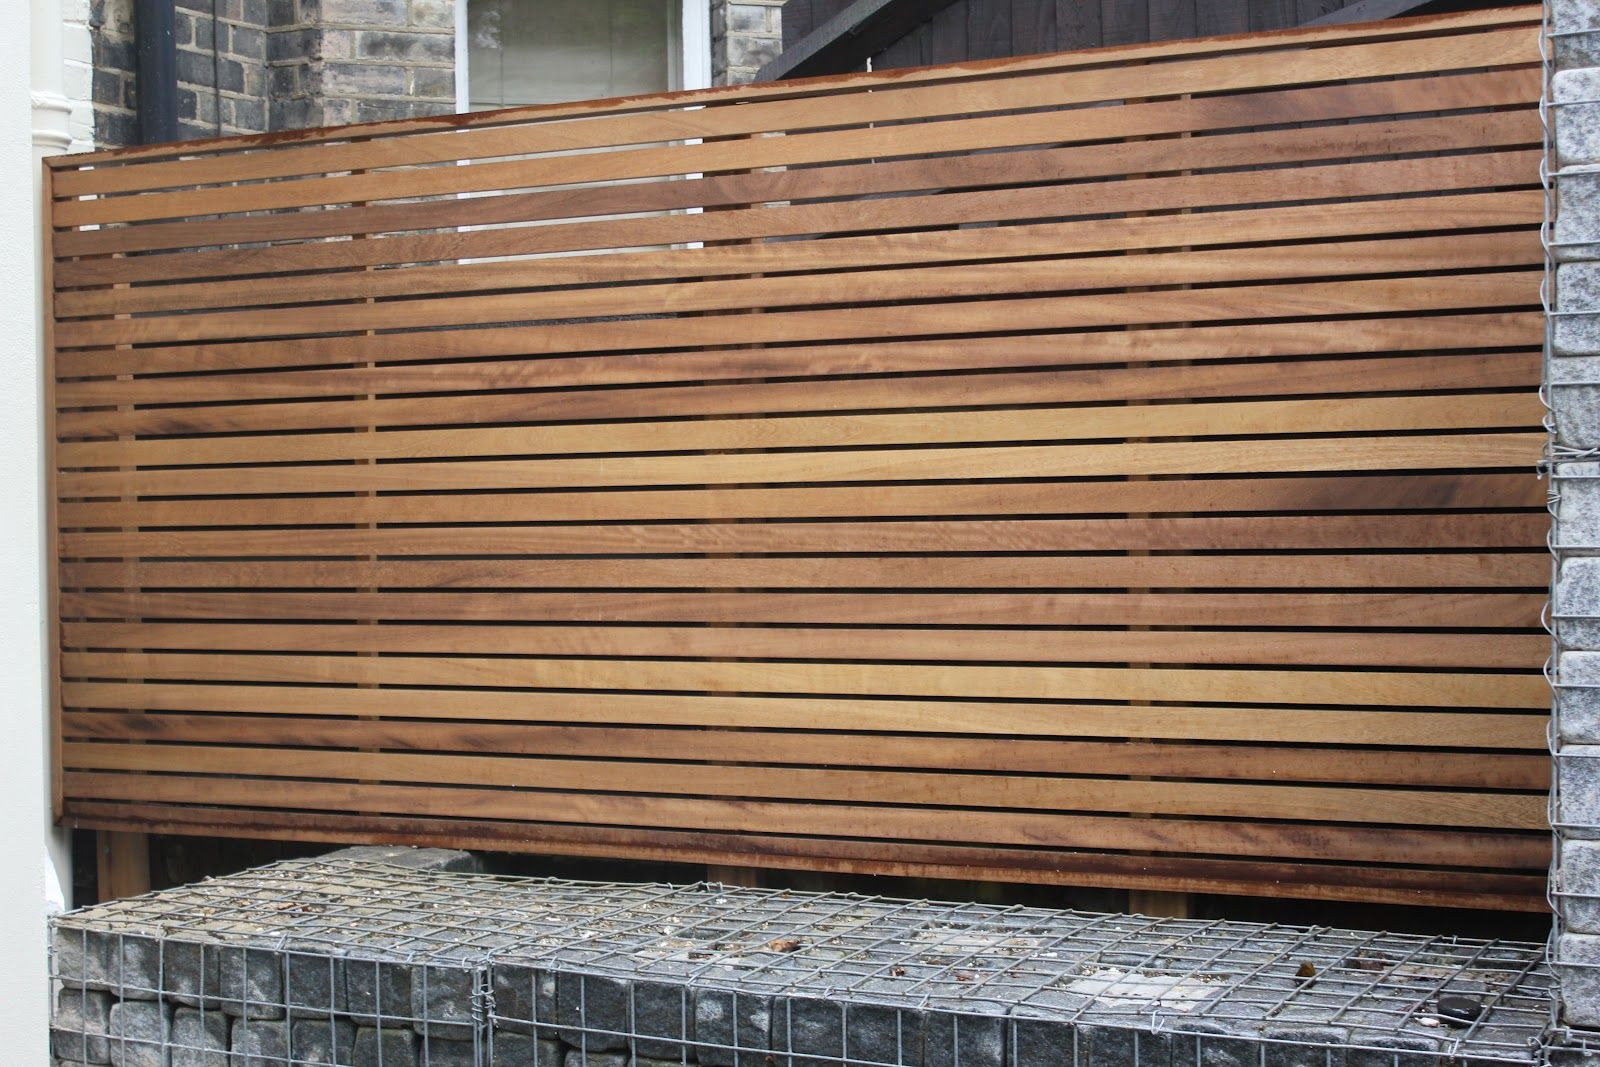 Garden Wooden Fence Designs wonderful looking wood garden fence interesting decoration wood garden fence designs Contemporary Wooden Wall Cladding And Fencing Ideas